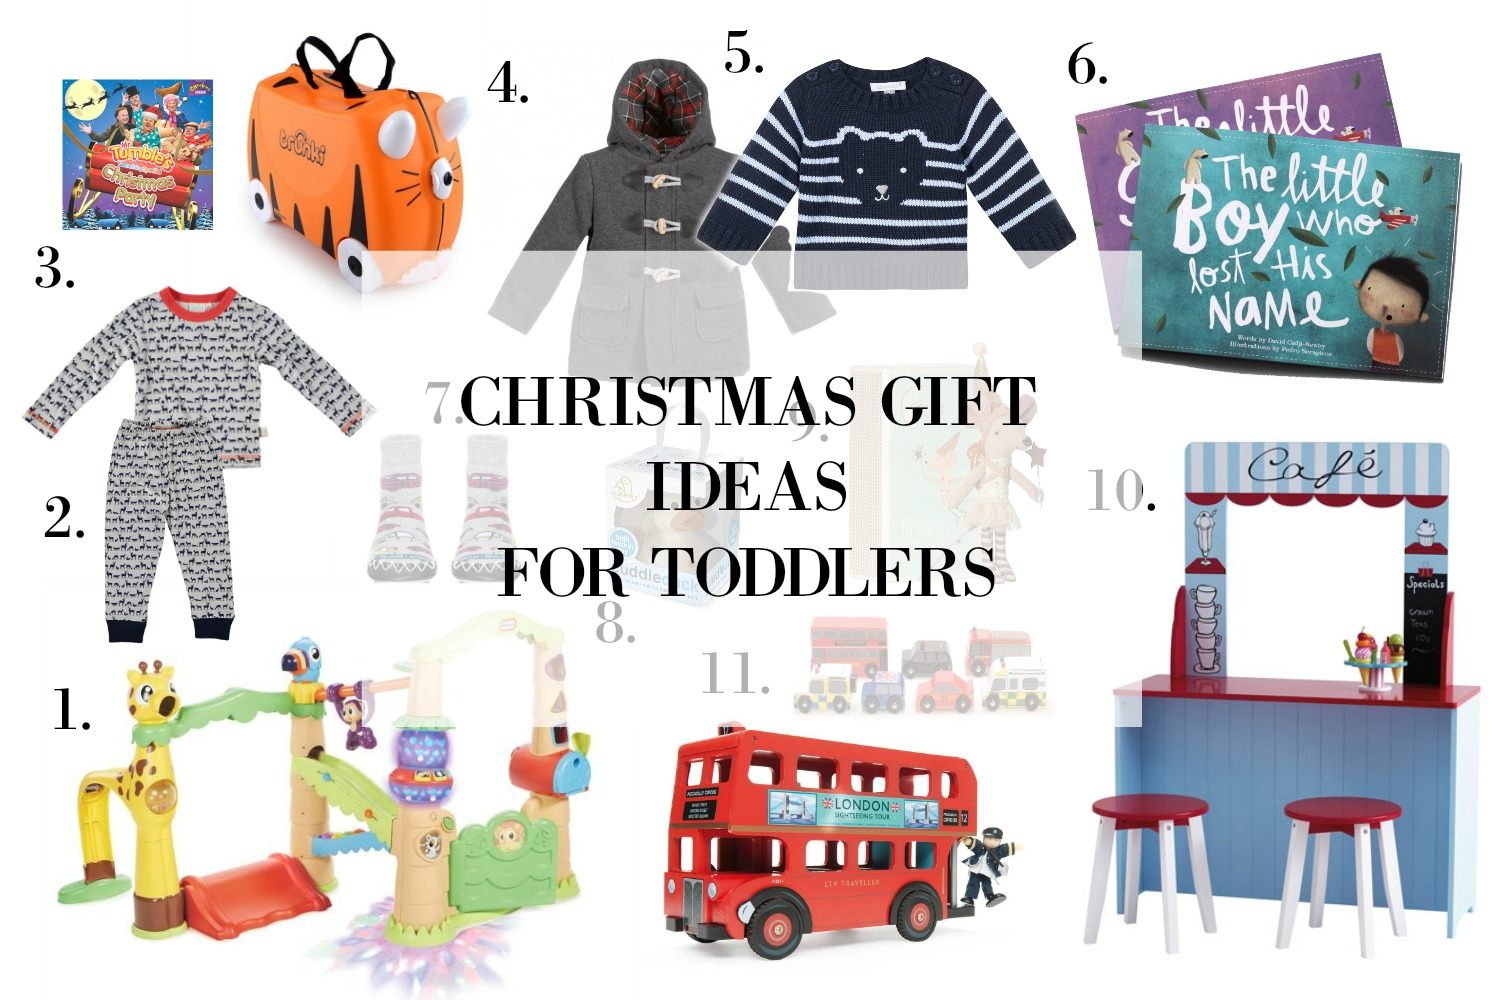 CHRISTMAS GIFT IDEAS FOR TODDLERS - scandimummy.com